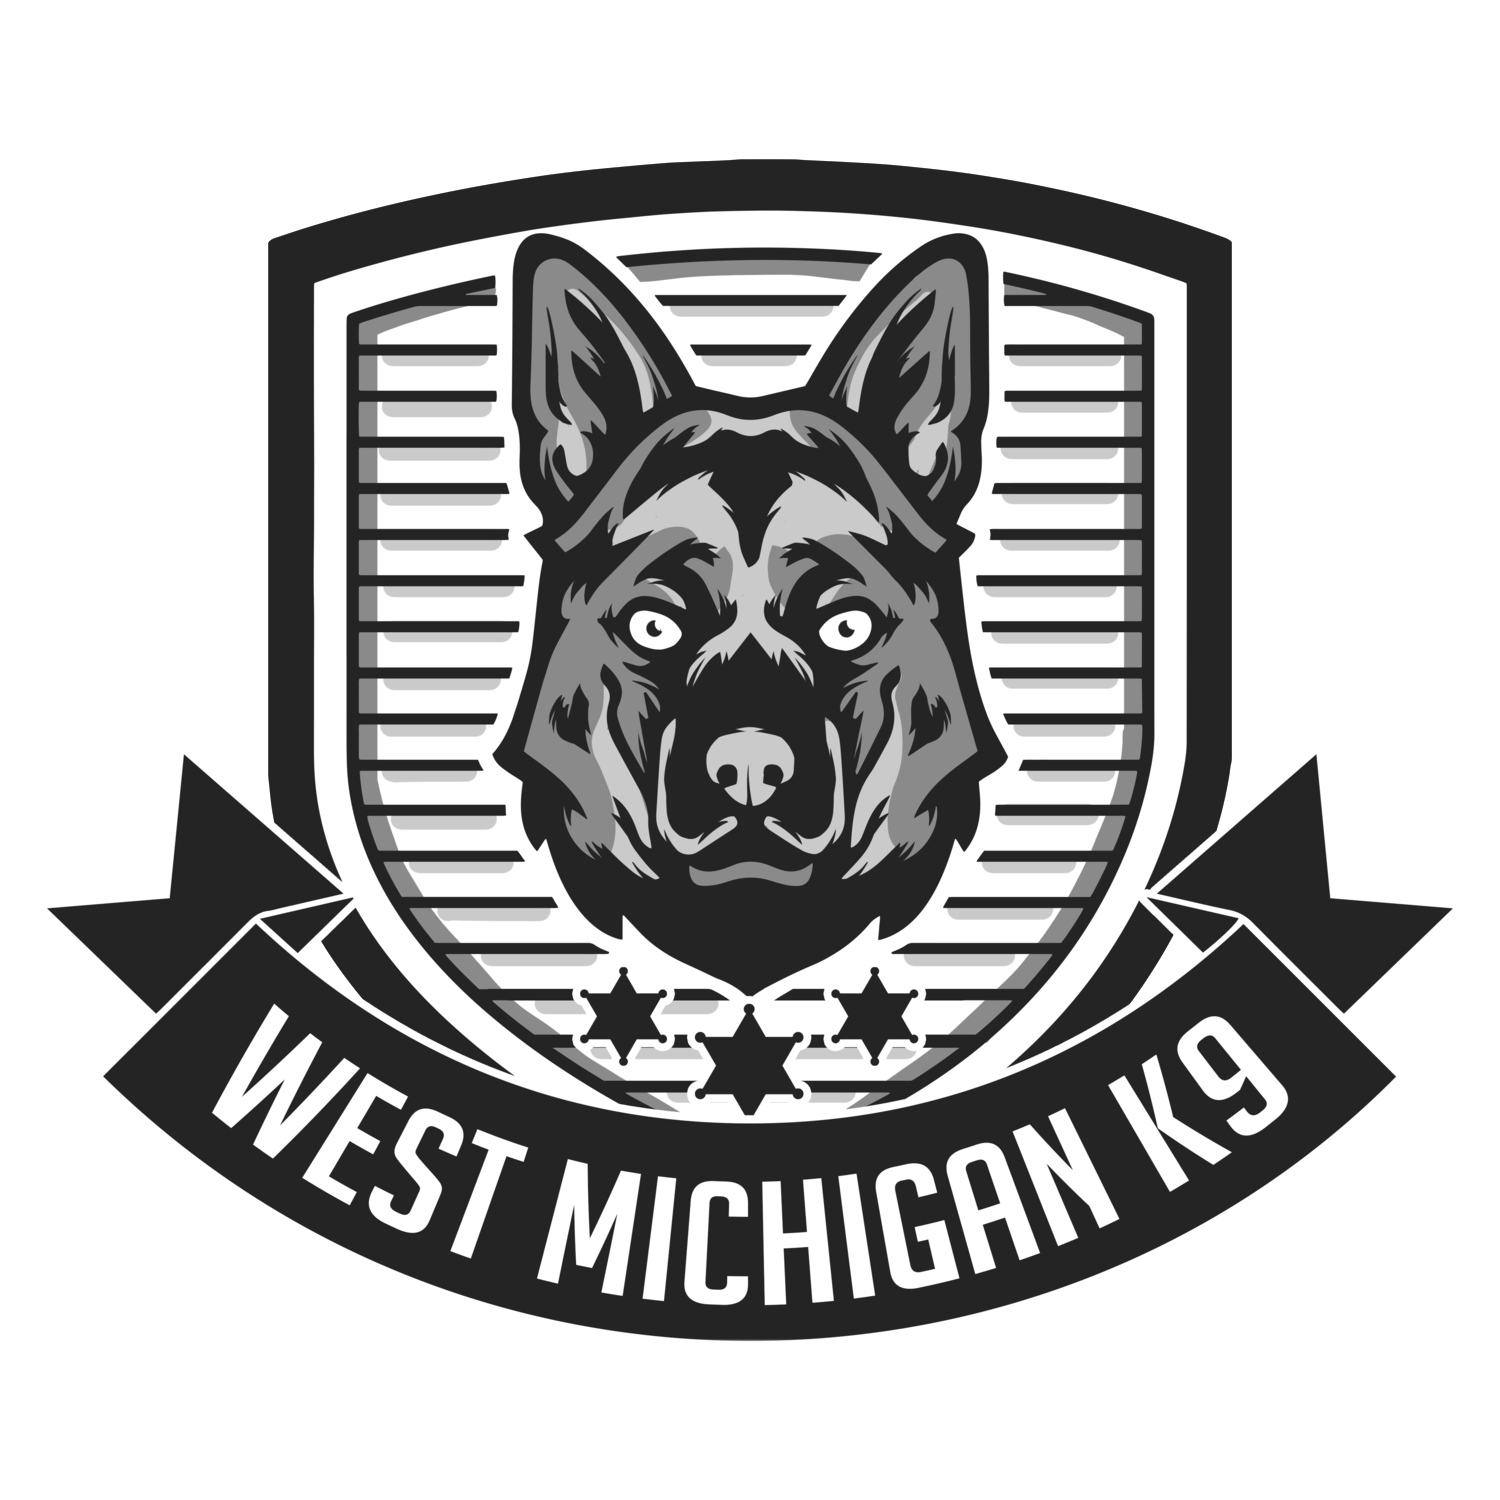 WEST MICHIGAN K9